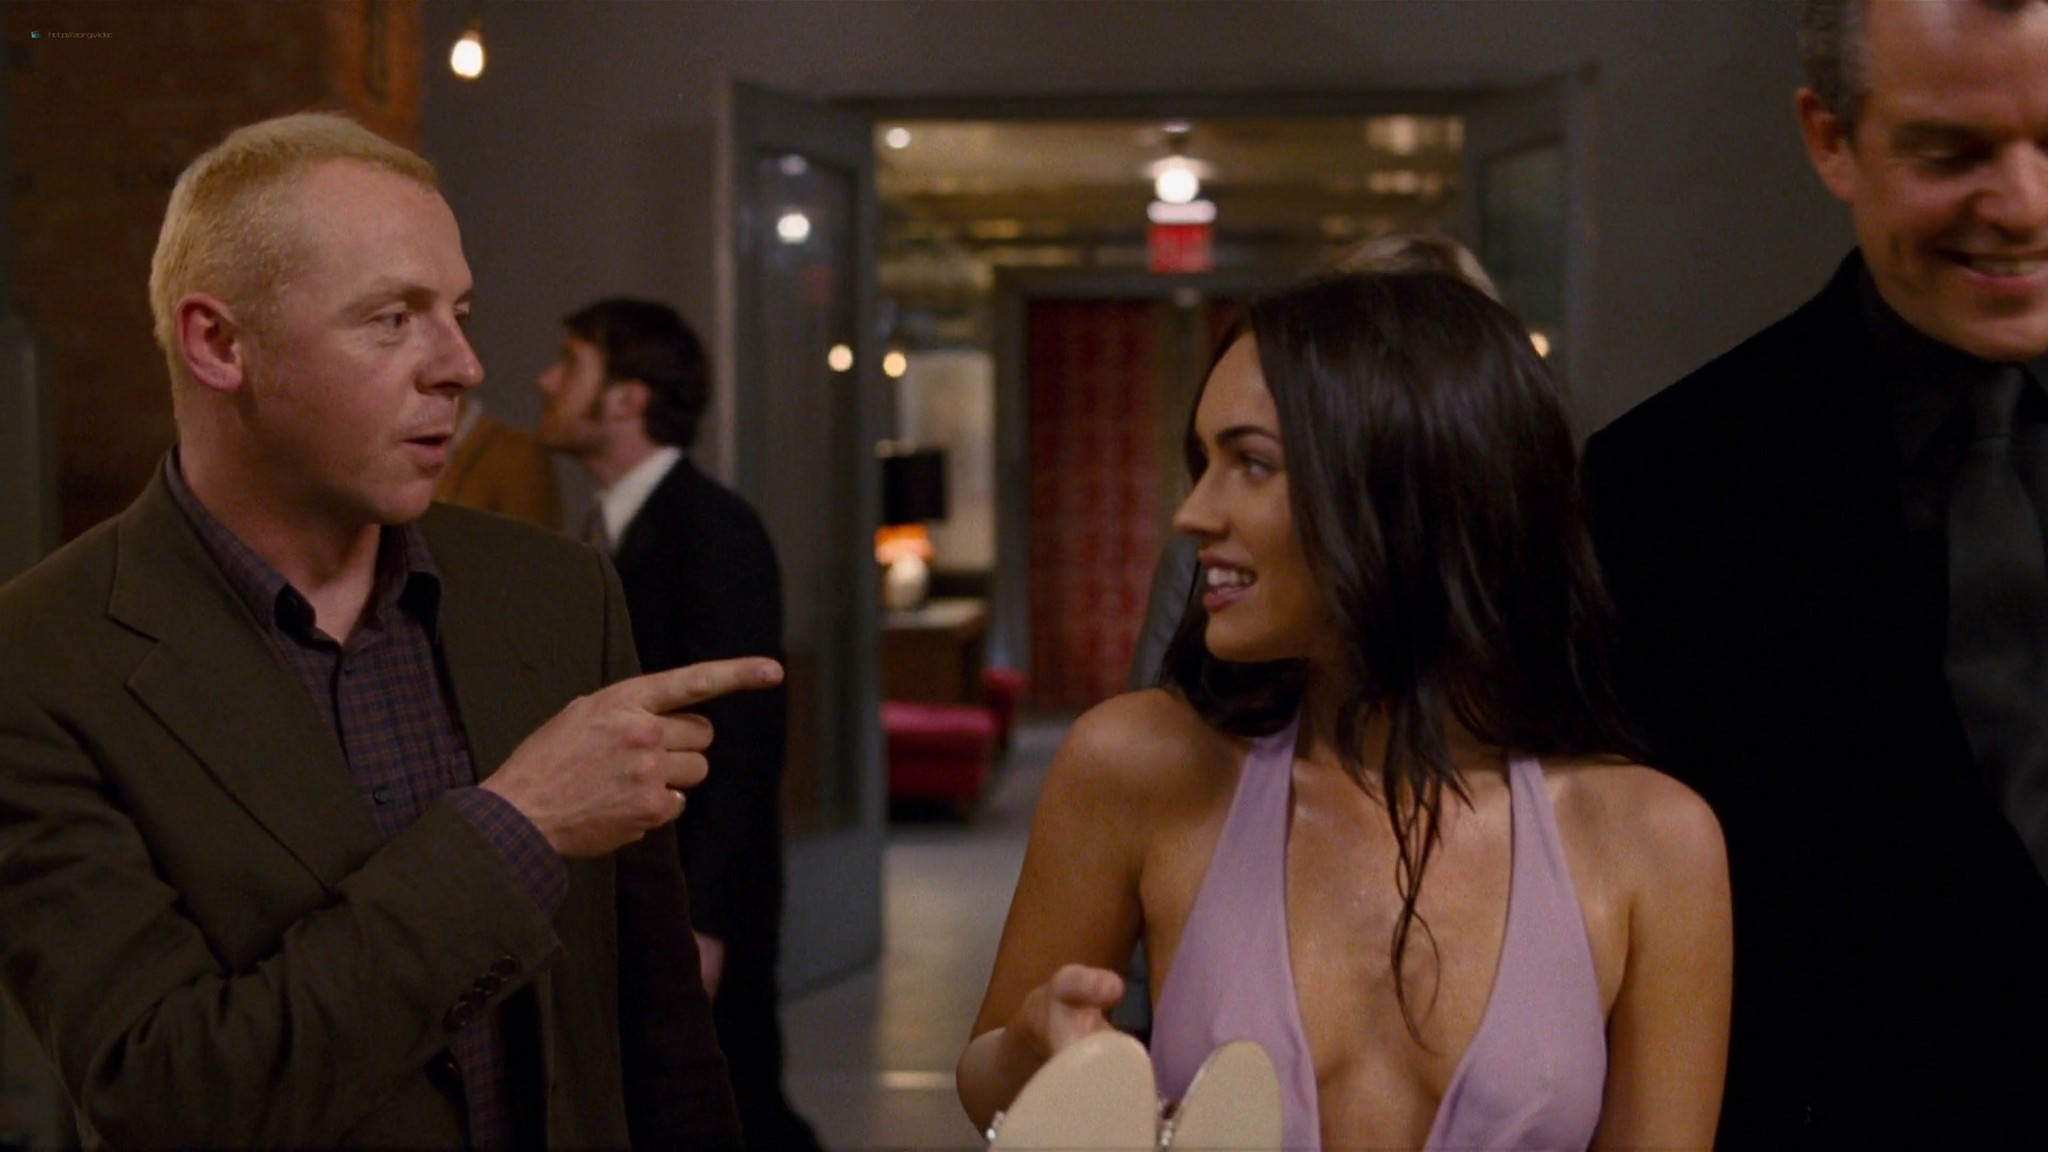 Megan Fox hot wet - How to Lose Friends and Alienate People (2008) HD 1080p BluRay (14)